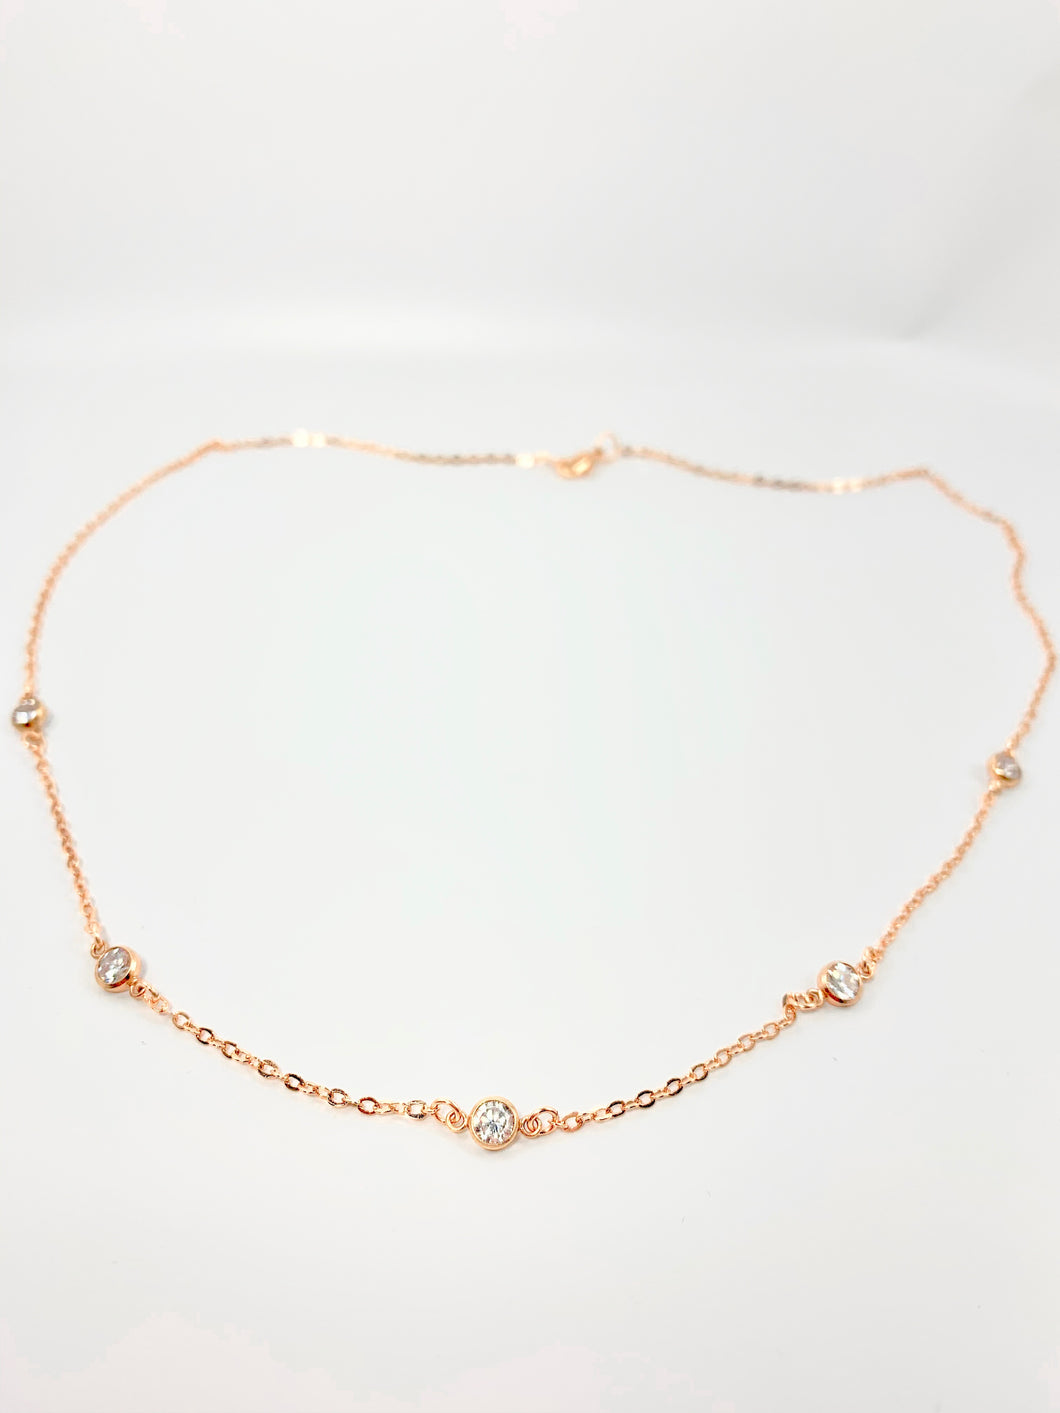 Ivy Necklace - AR TodayCharm Jewelry Company